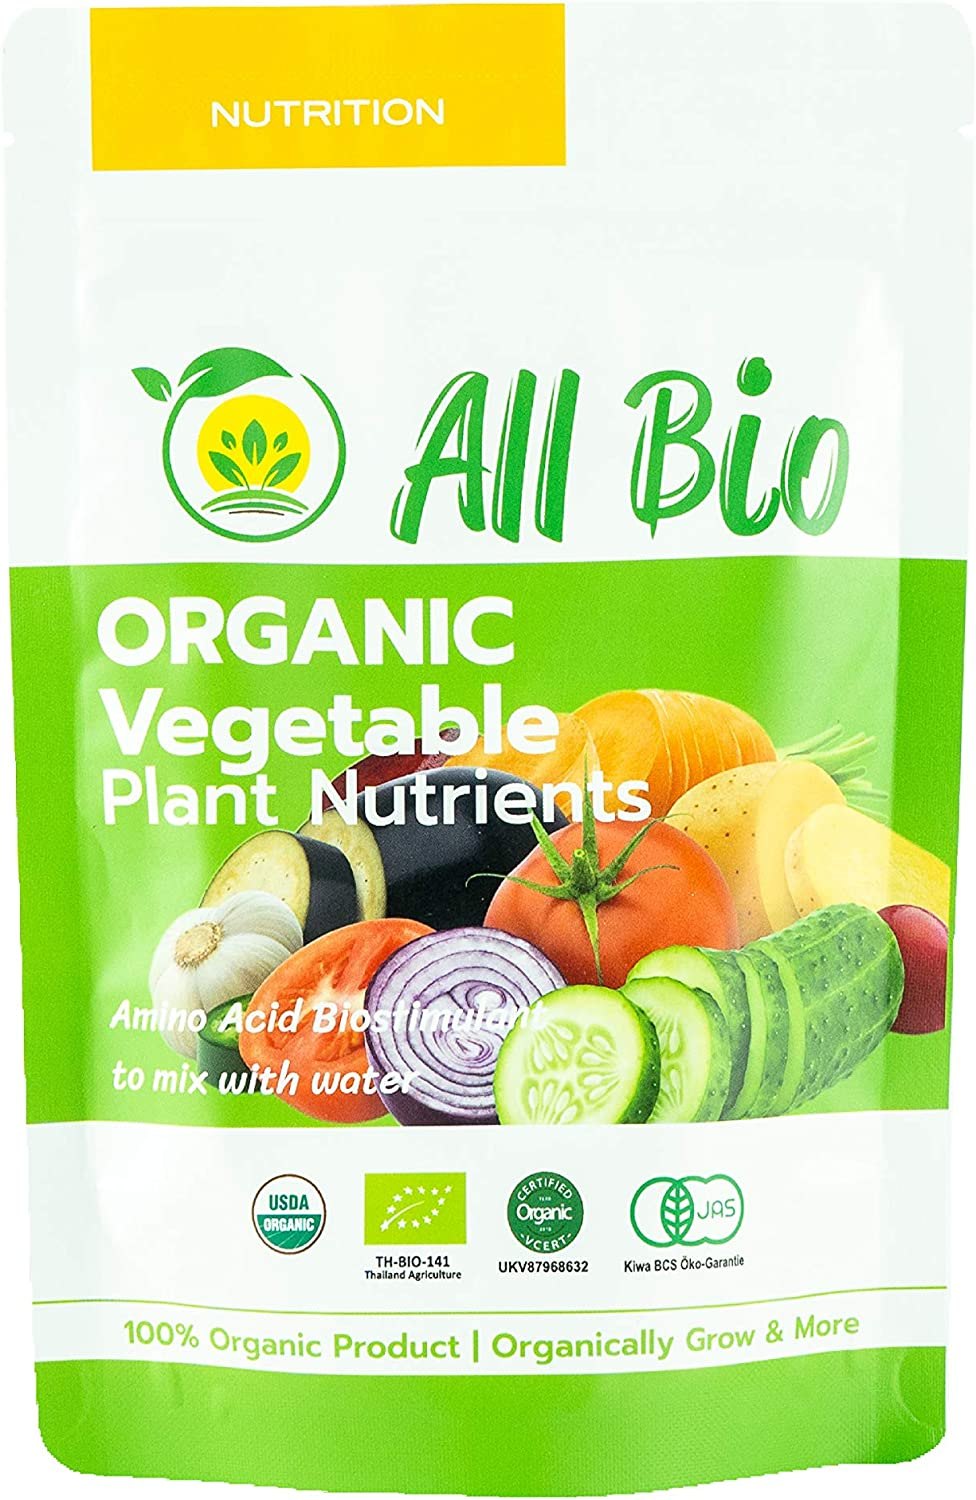 ALL BIO- Organic Plant Food- Vegetable and Edible Greens Nutrients/Biostimulants for Indoor House Plants and Outdoor Plants/Mixed in Water/Foliar Spray. Covers Approx. 9,000 sq.ft (50g)